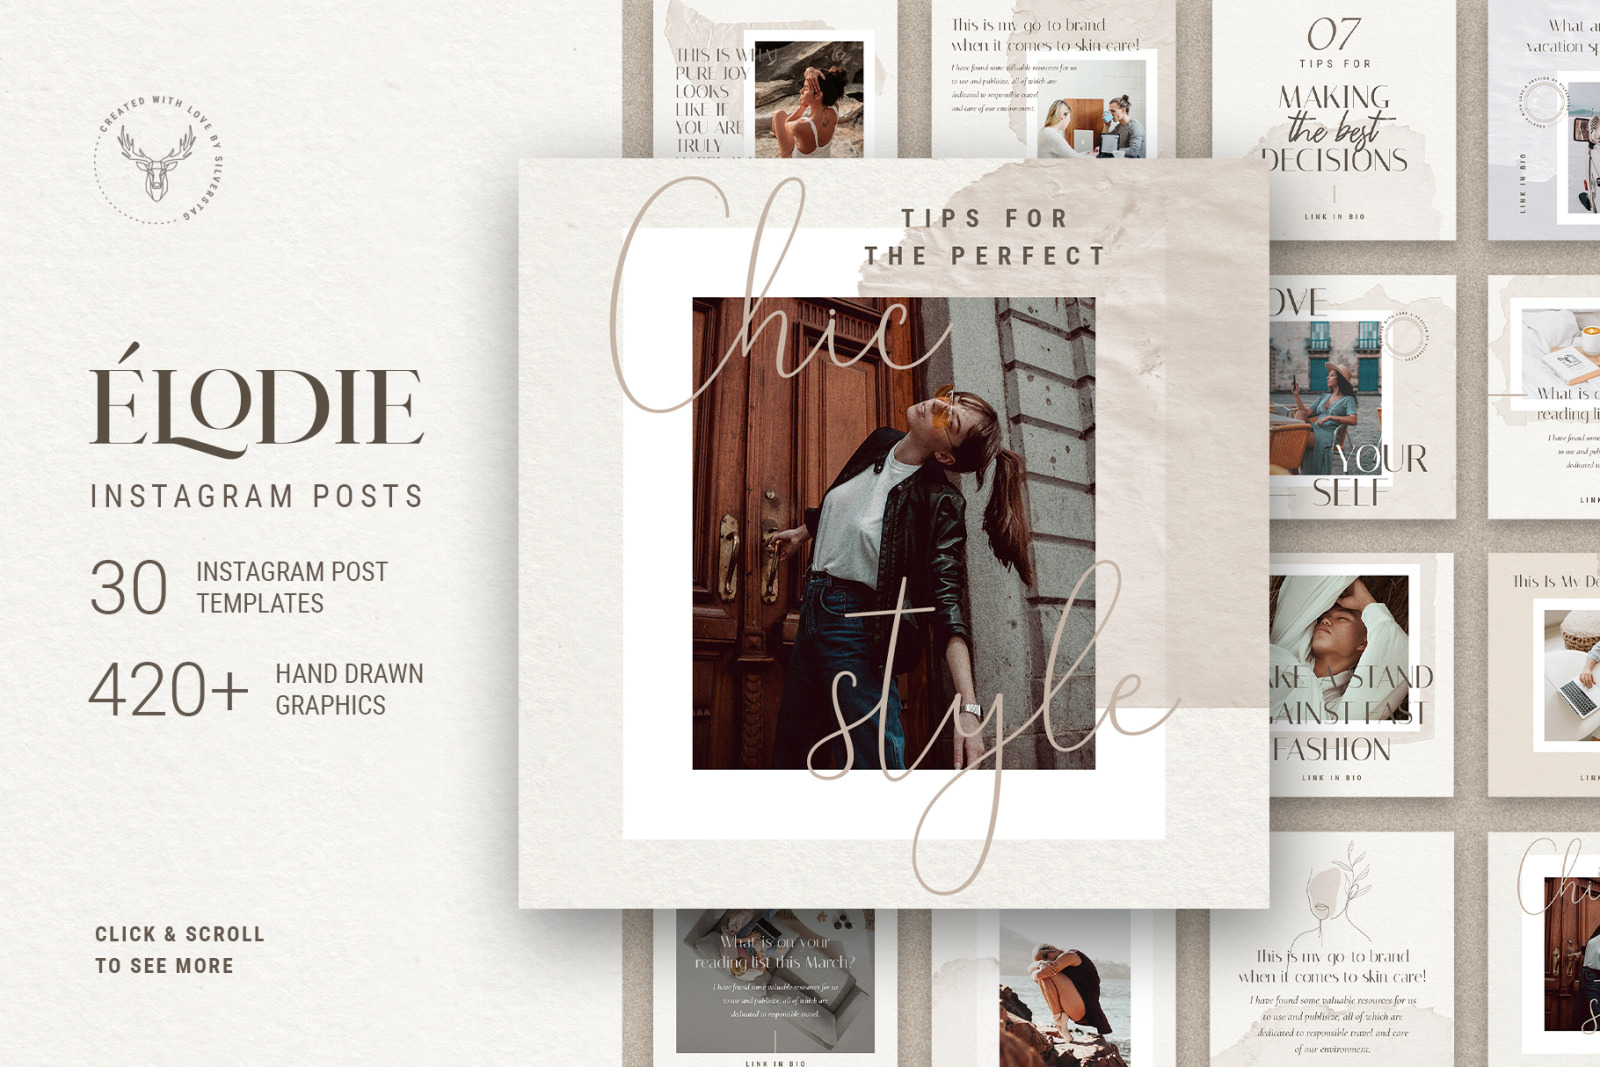 Elodie - Instagram Post Templates